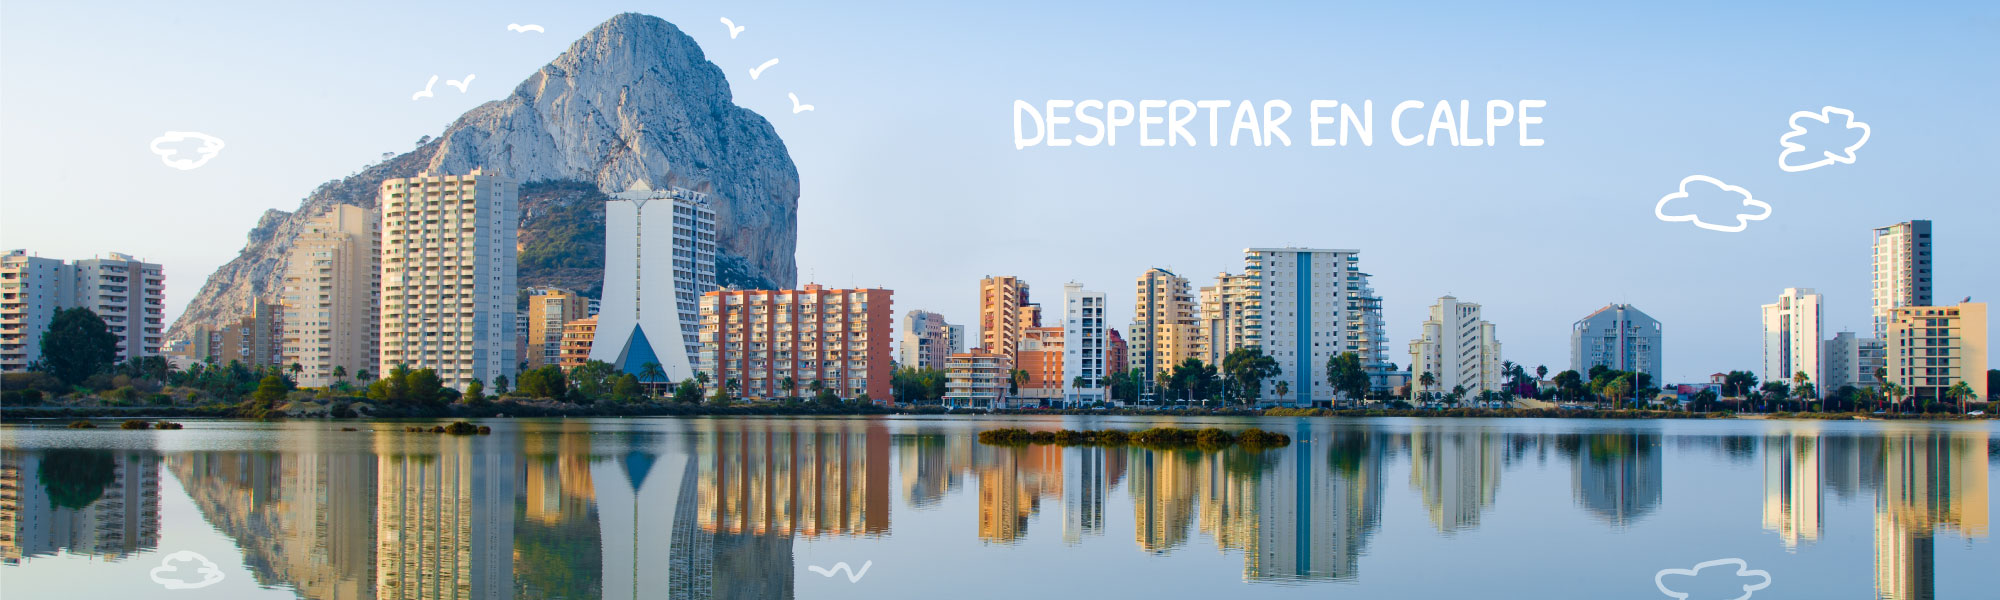 slide-despertar